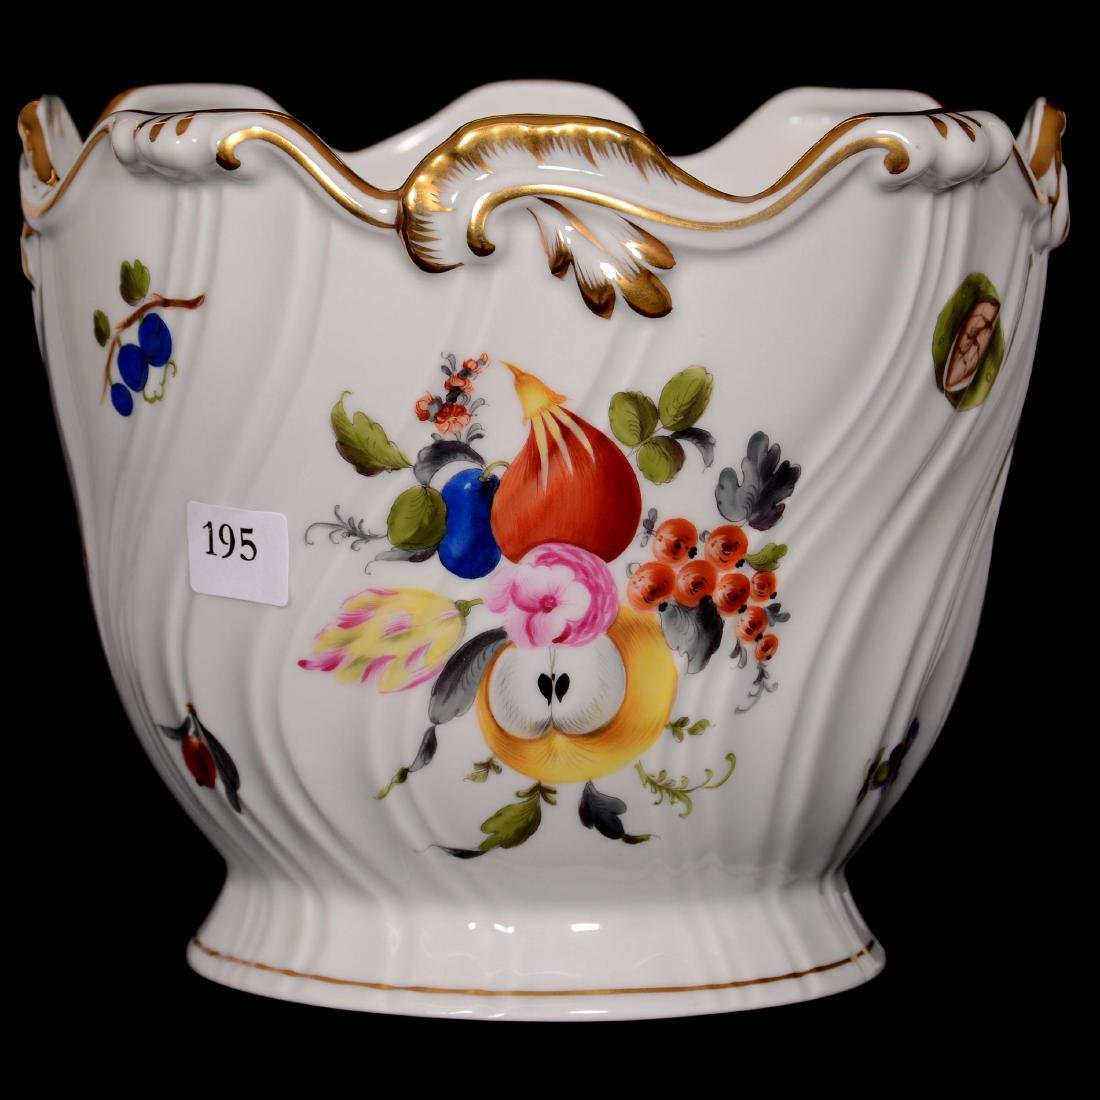 Herend Hungary Porcelain Hand Painted Jardiniere